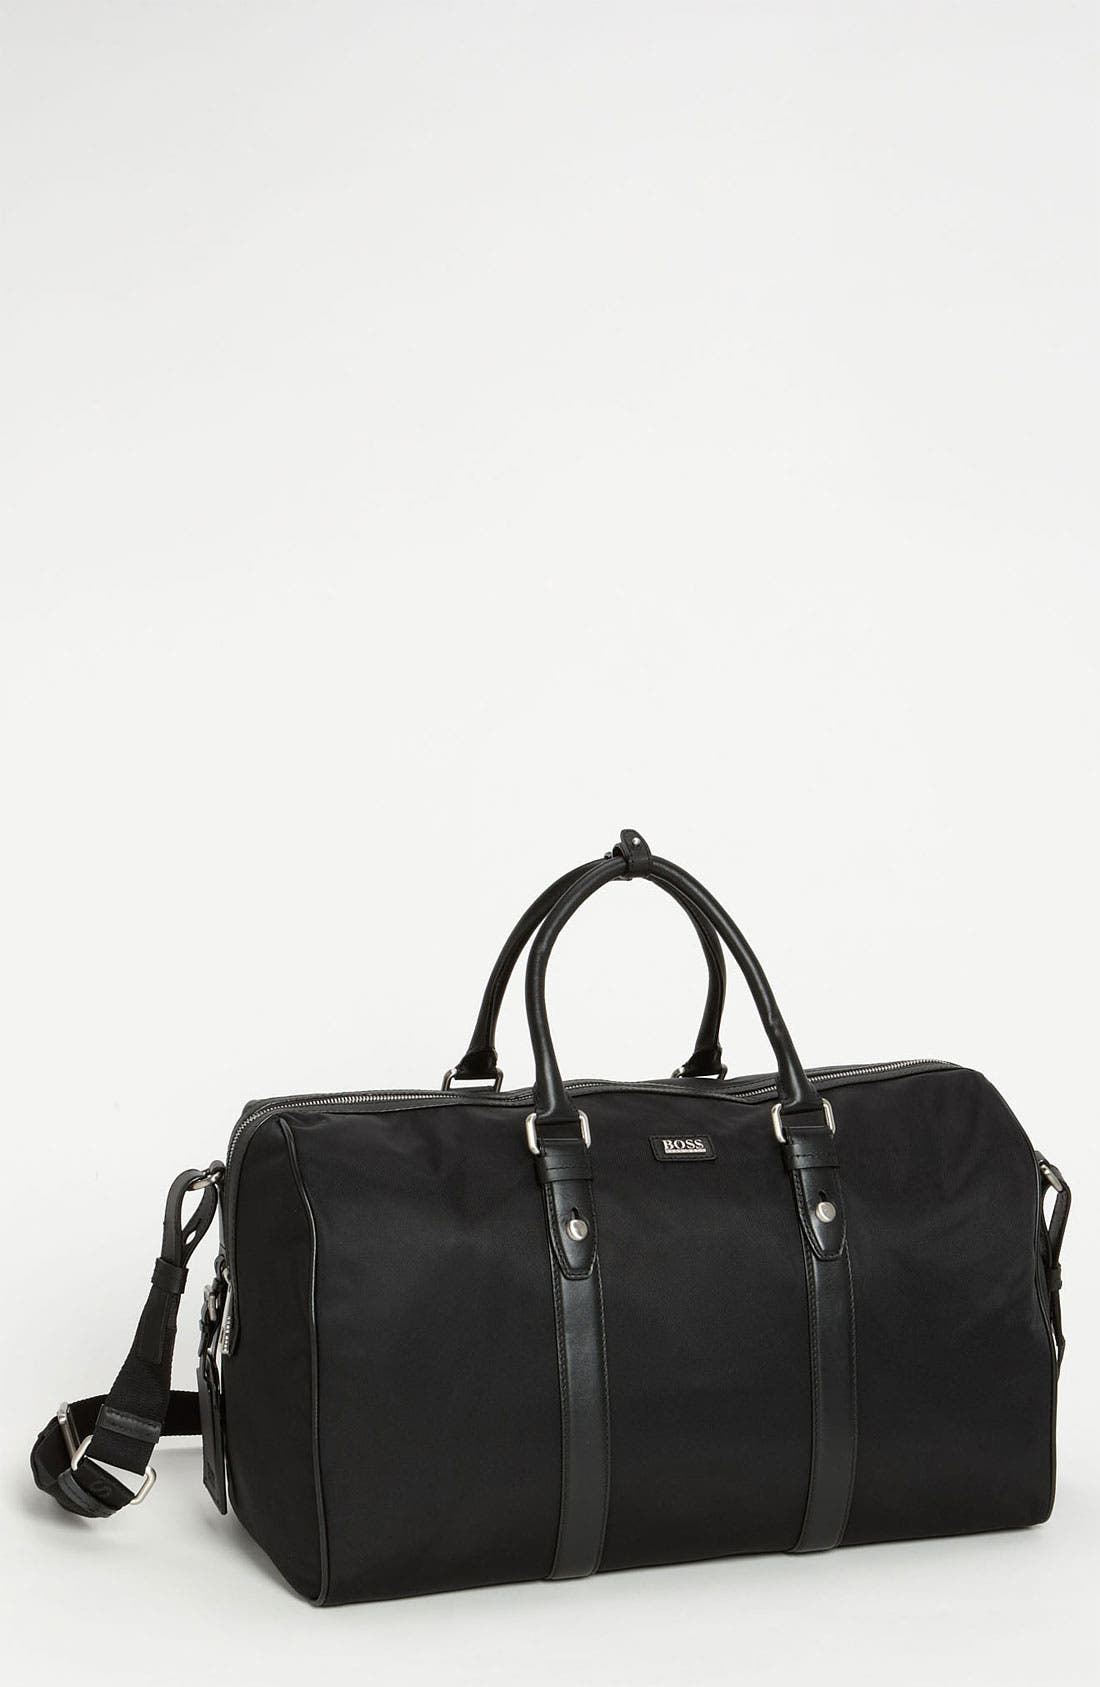 Main Image - BOSS Black 'Teddi' Duffel Bag